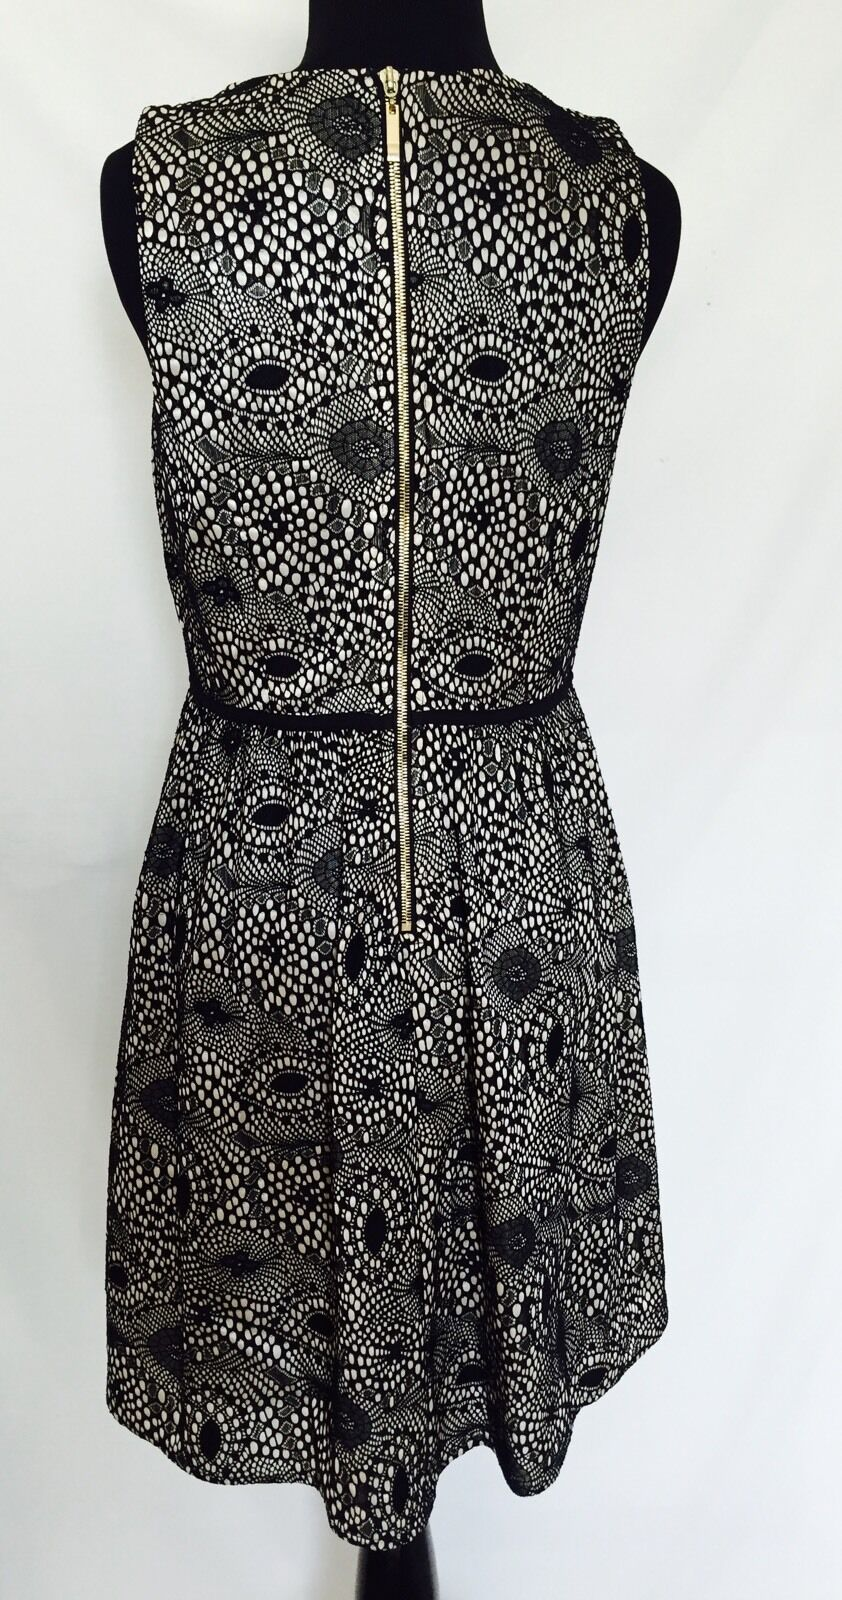 ESLEY COLLECTION SLEEVELESS DRESS. NWT SIZE M. BLACK LACE  OVER NUDE PRICE $35